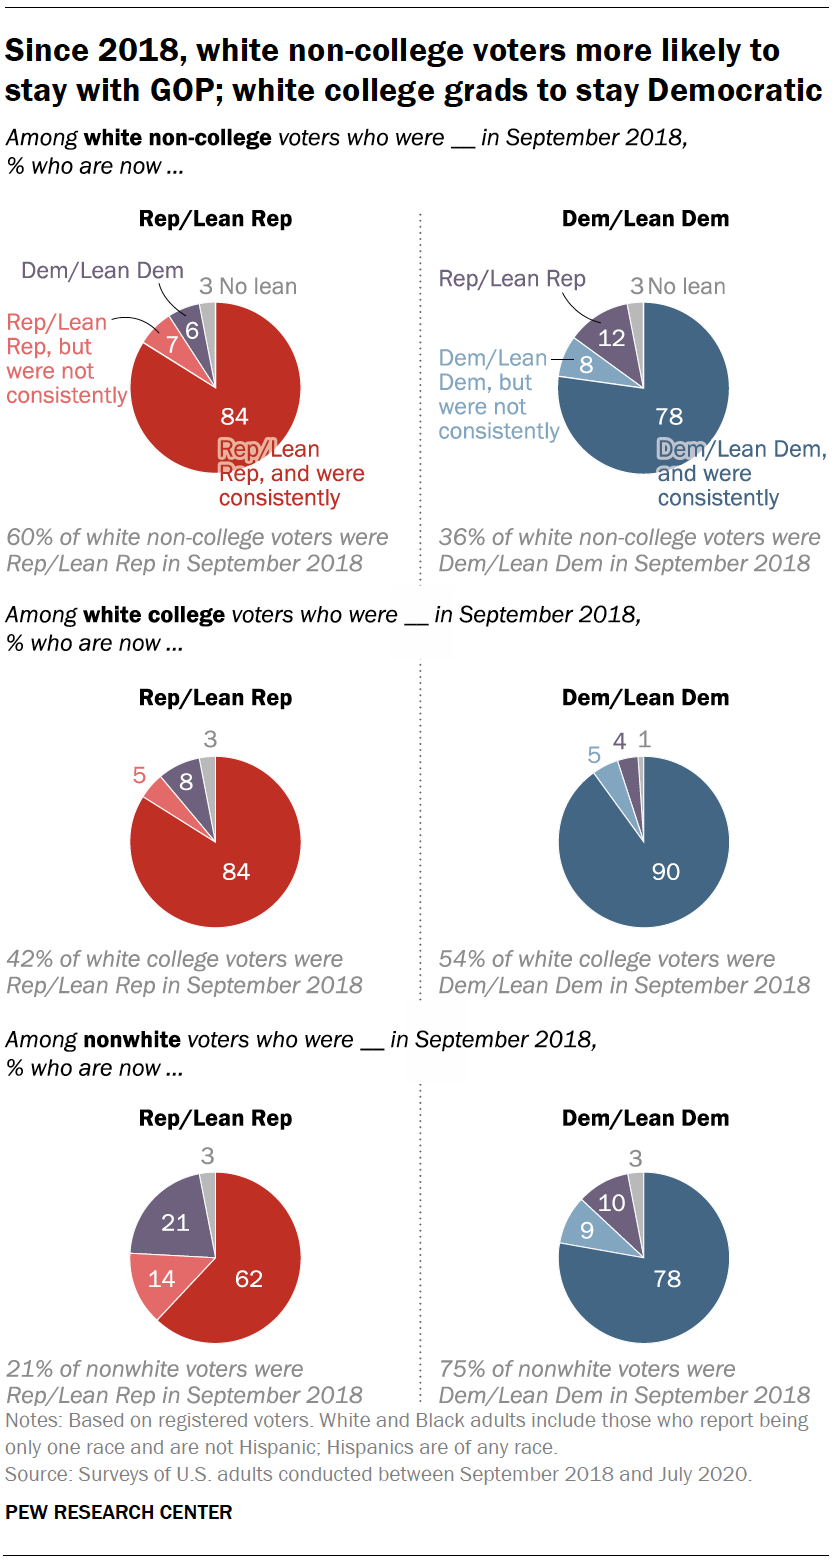 Since 2018, white non-college voters more likely to stay with GOP; white college grads to stay Democratic